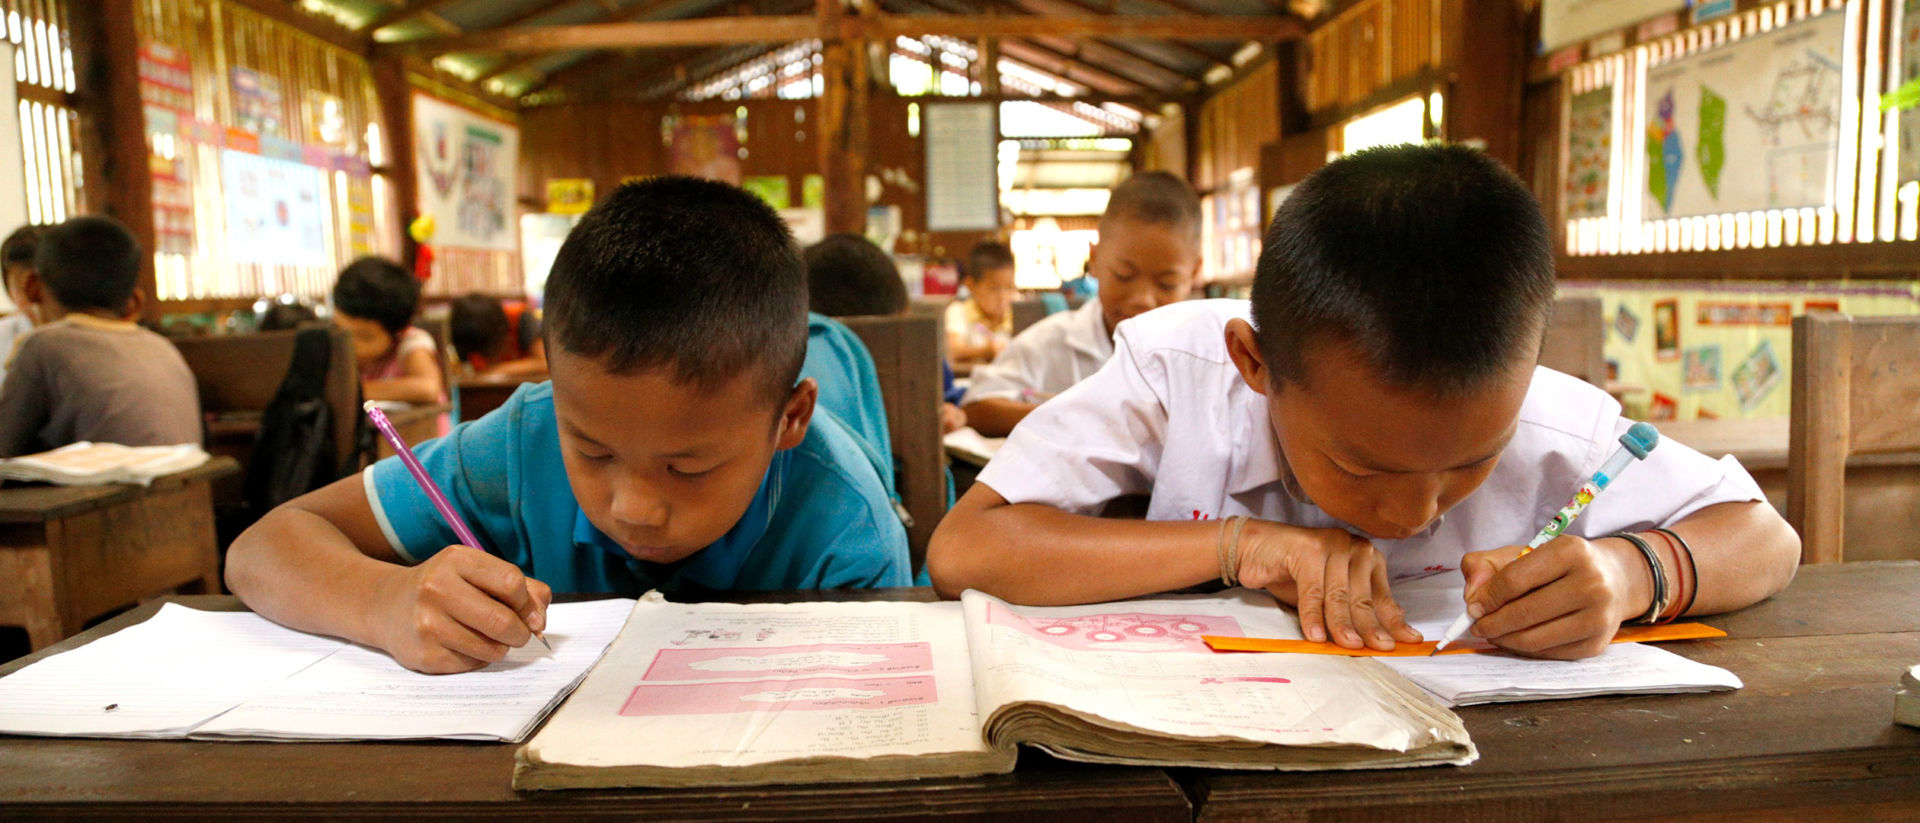 Songwut, right, and a classmate study in their village's wooden schoolhouse.